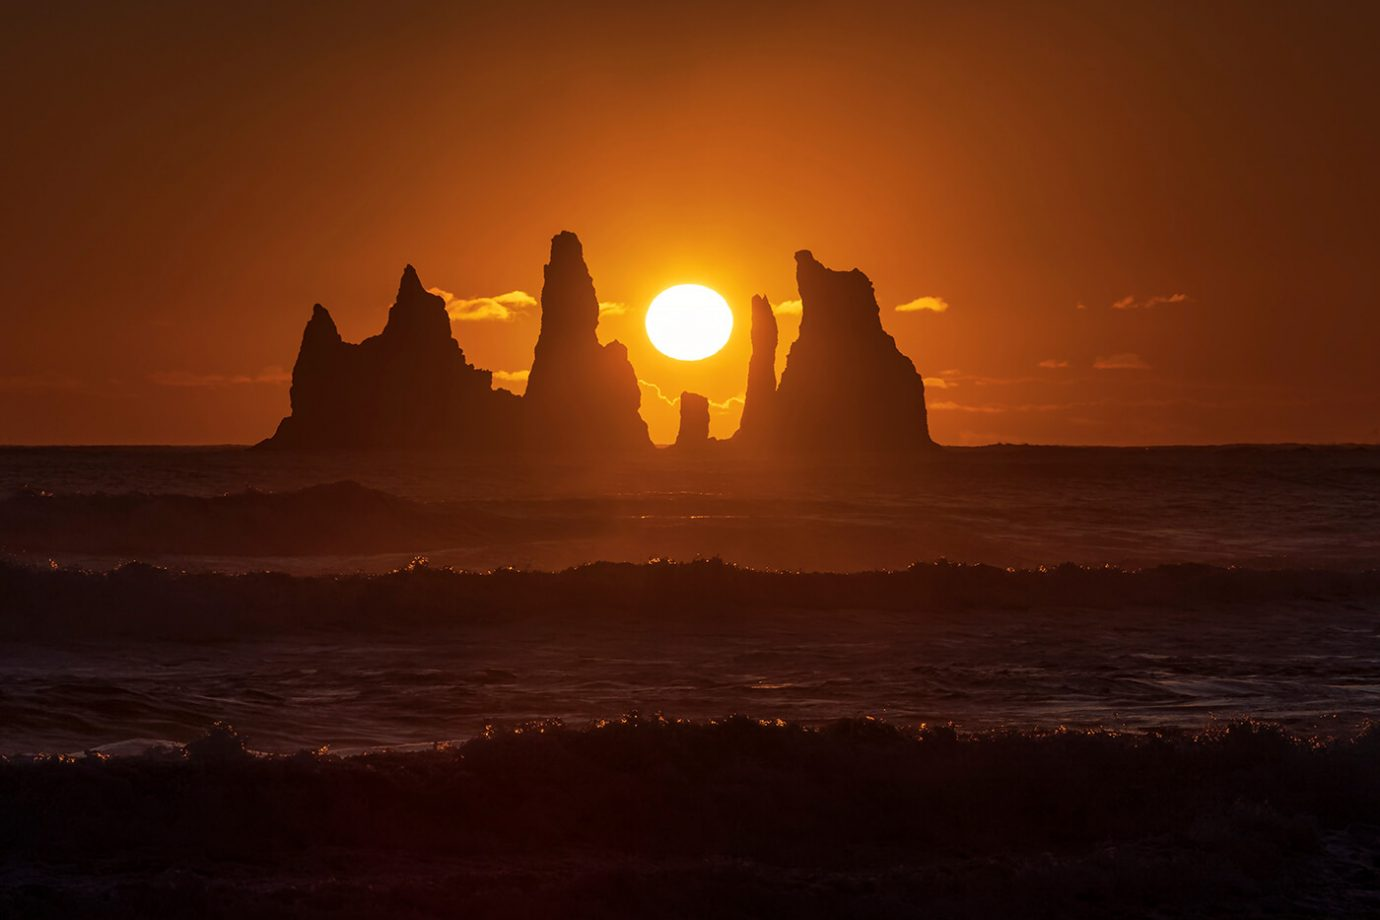 Sunset, Reynisdrangar Sea Stacks, Vik, Iceland, Melvin Nicholson Photography